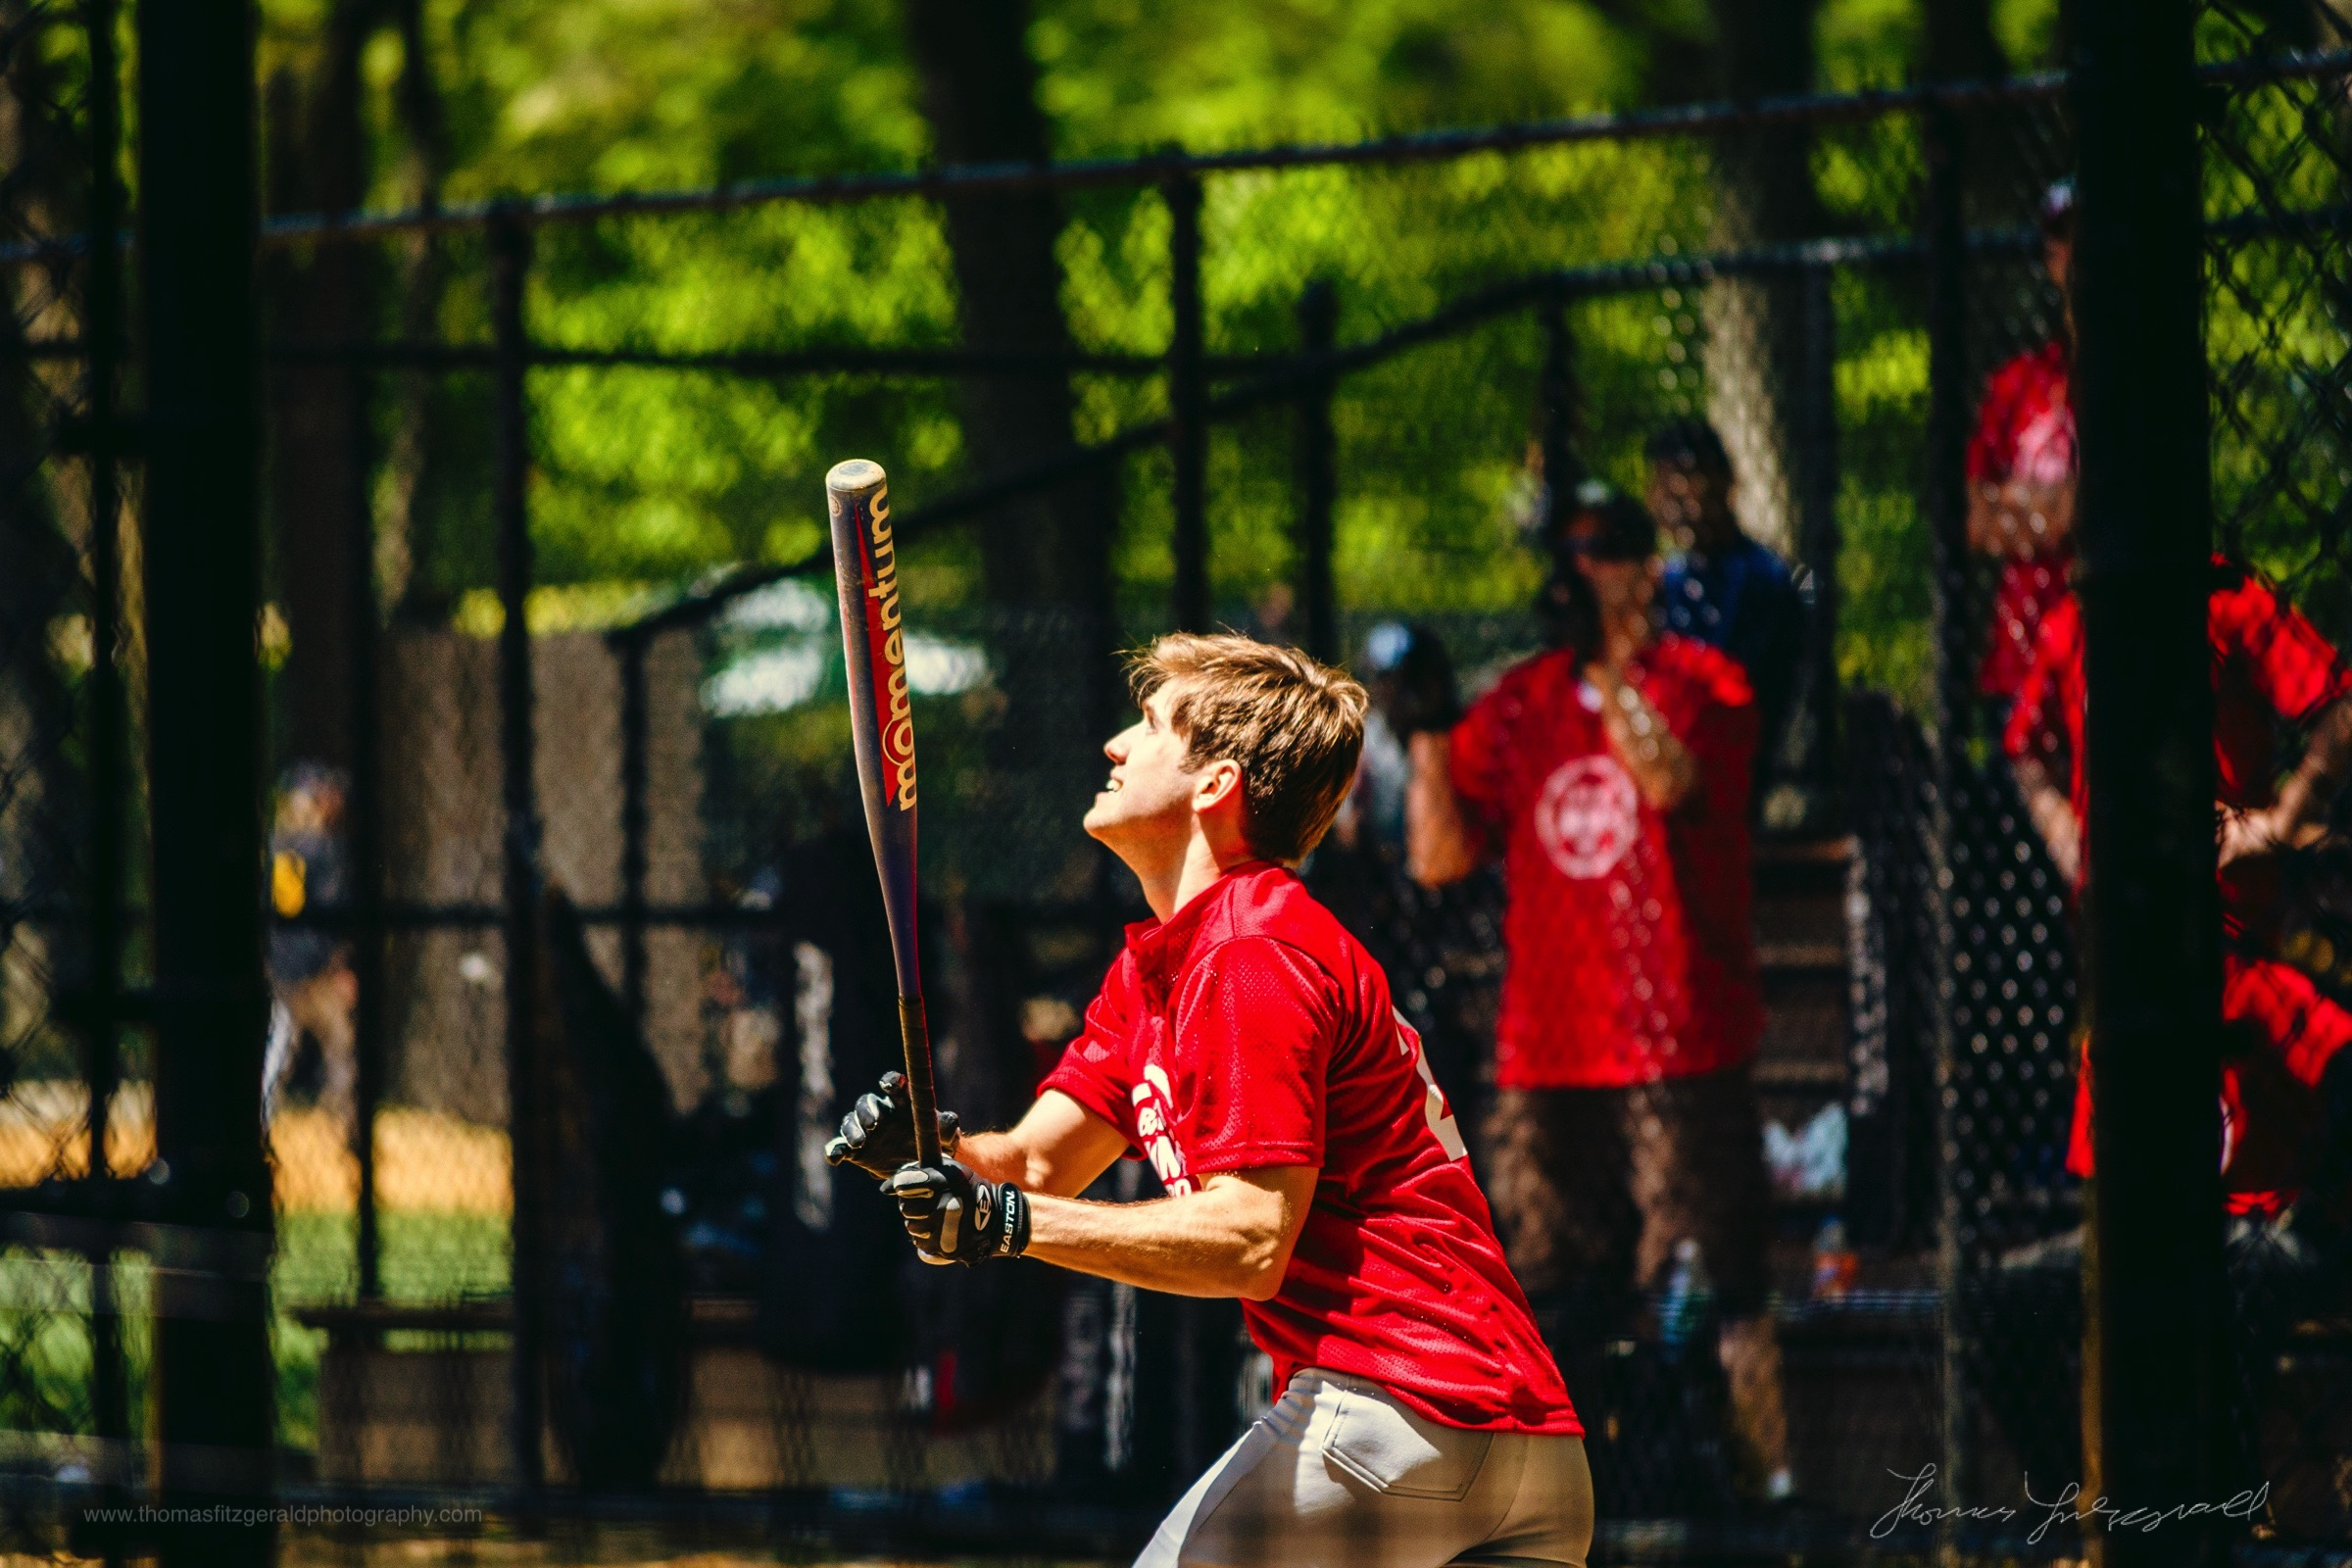 Baseball Player in Central Park